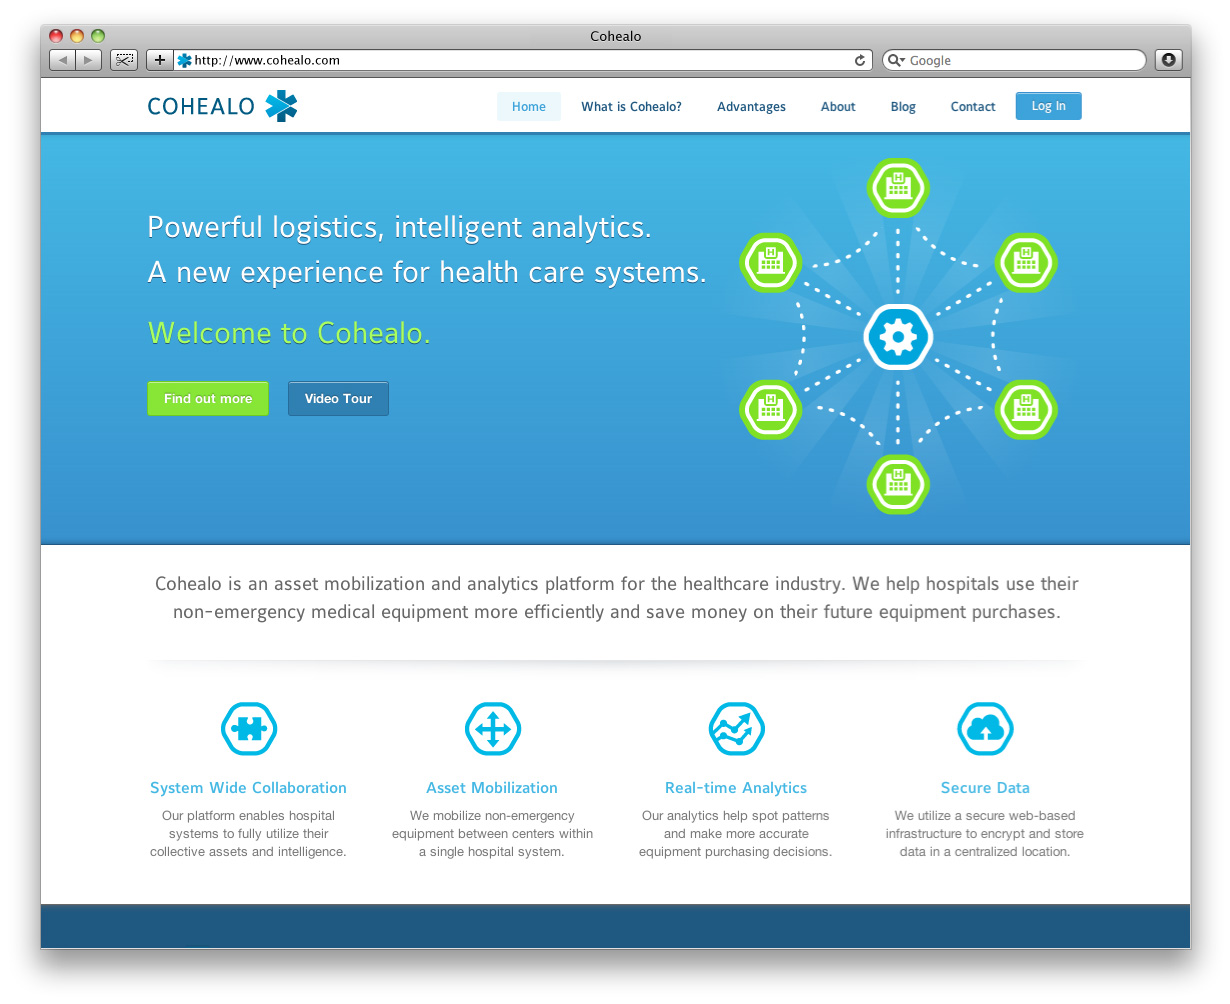 Cohealo Website Home Page